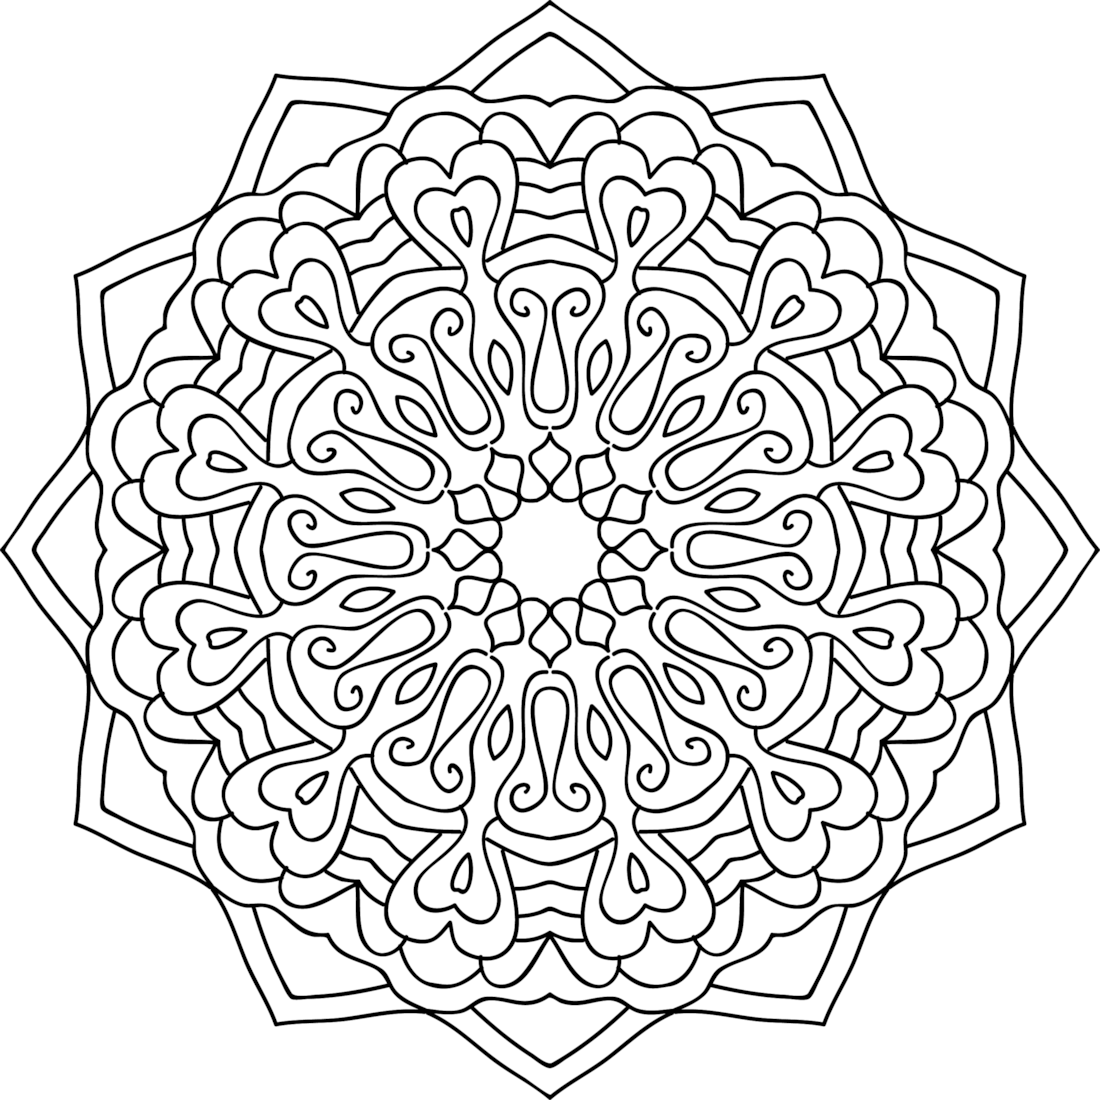 yarn coloring pages - HD 1100×1100